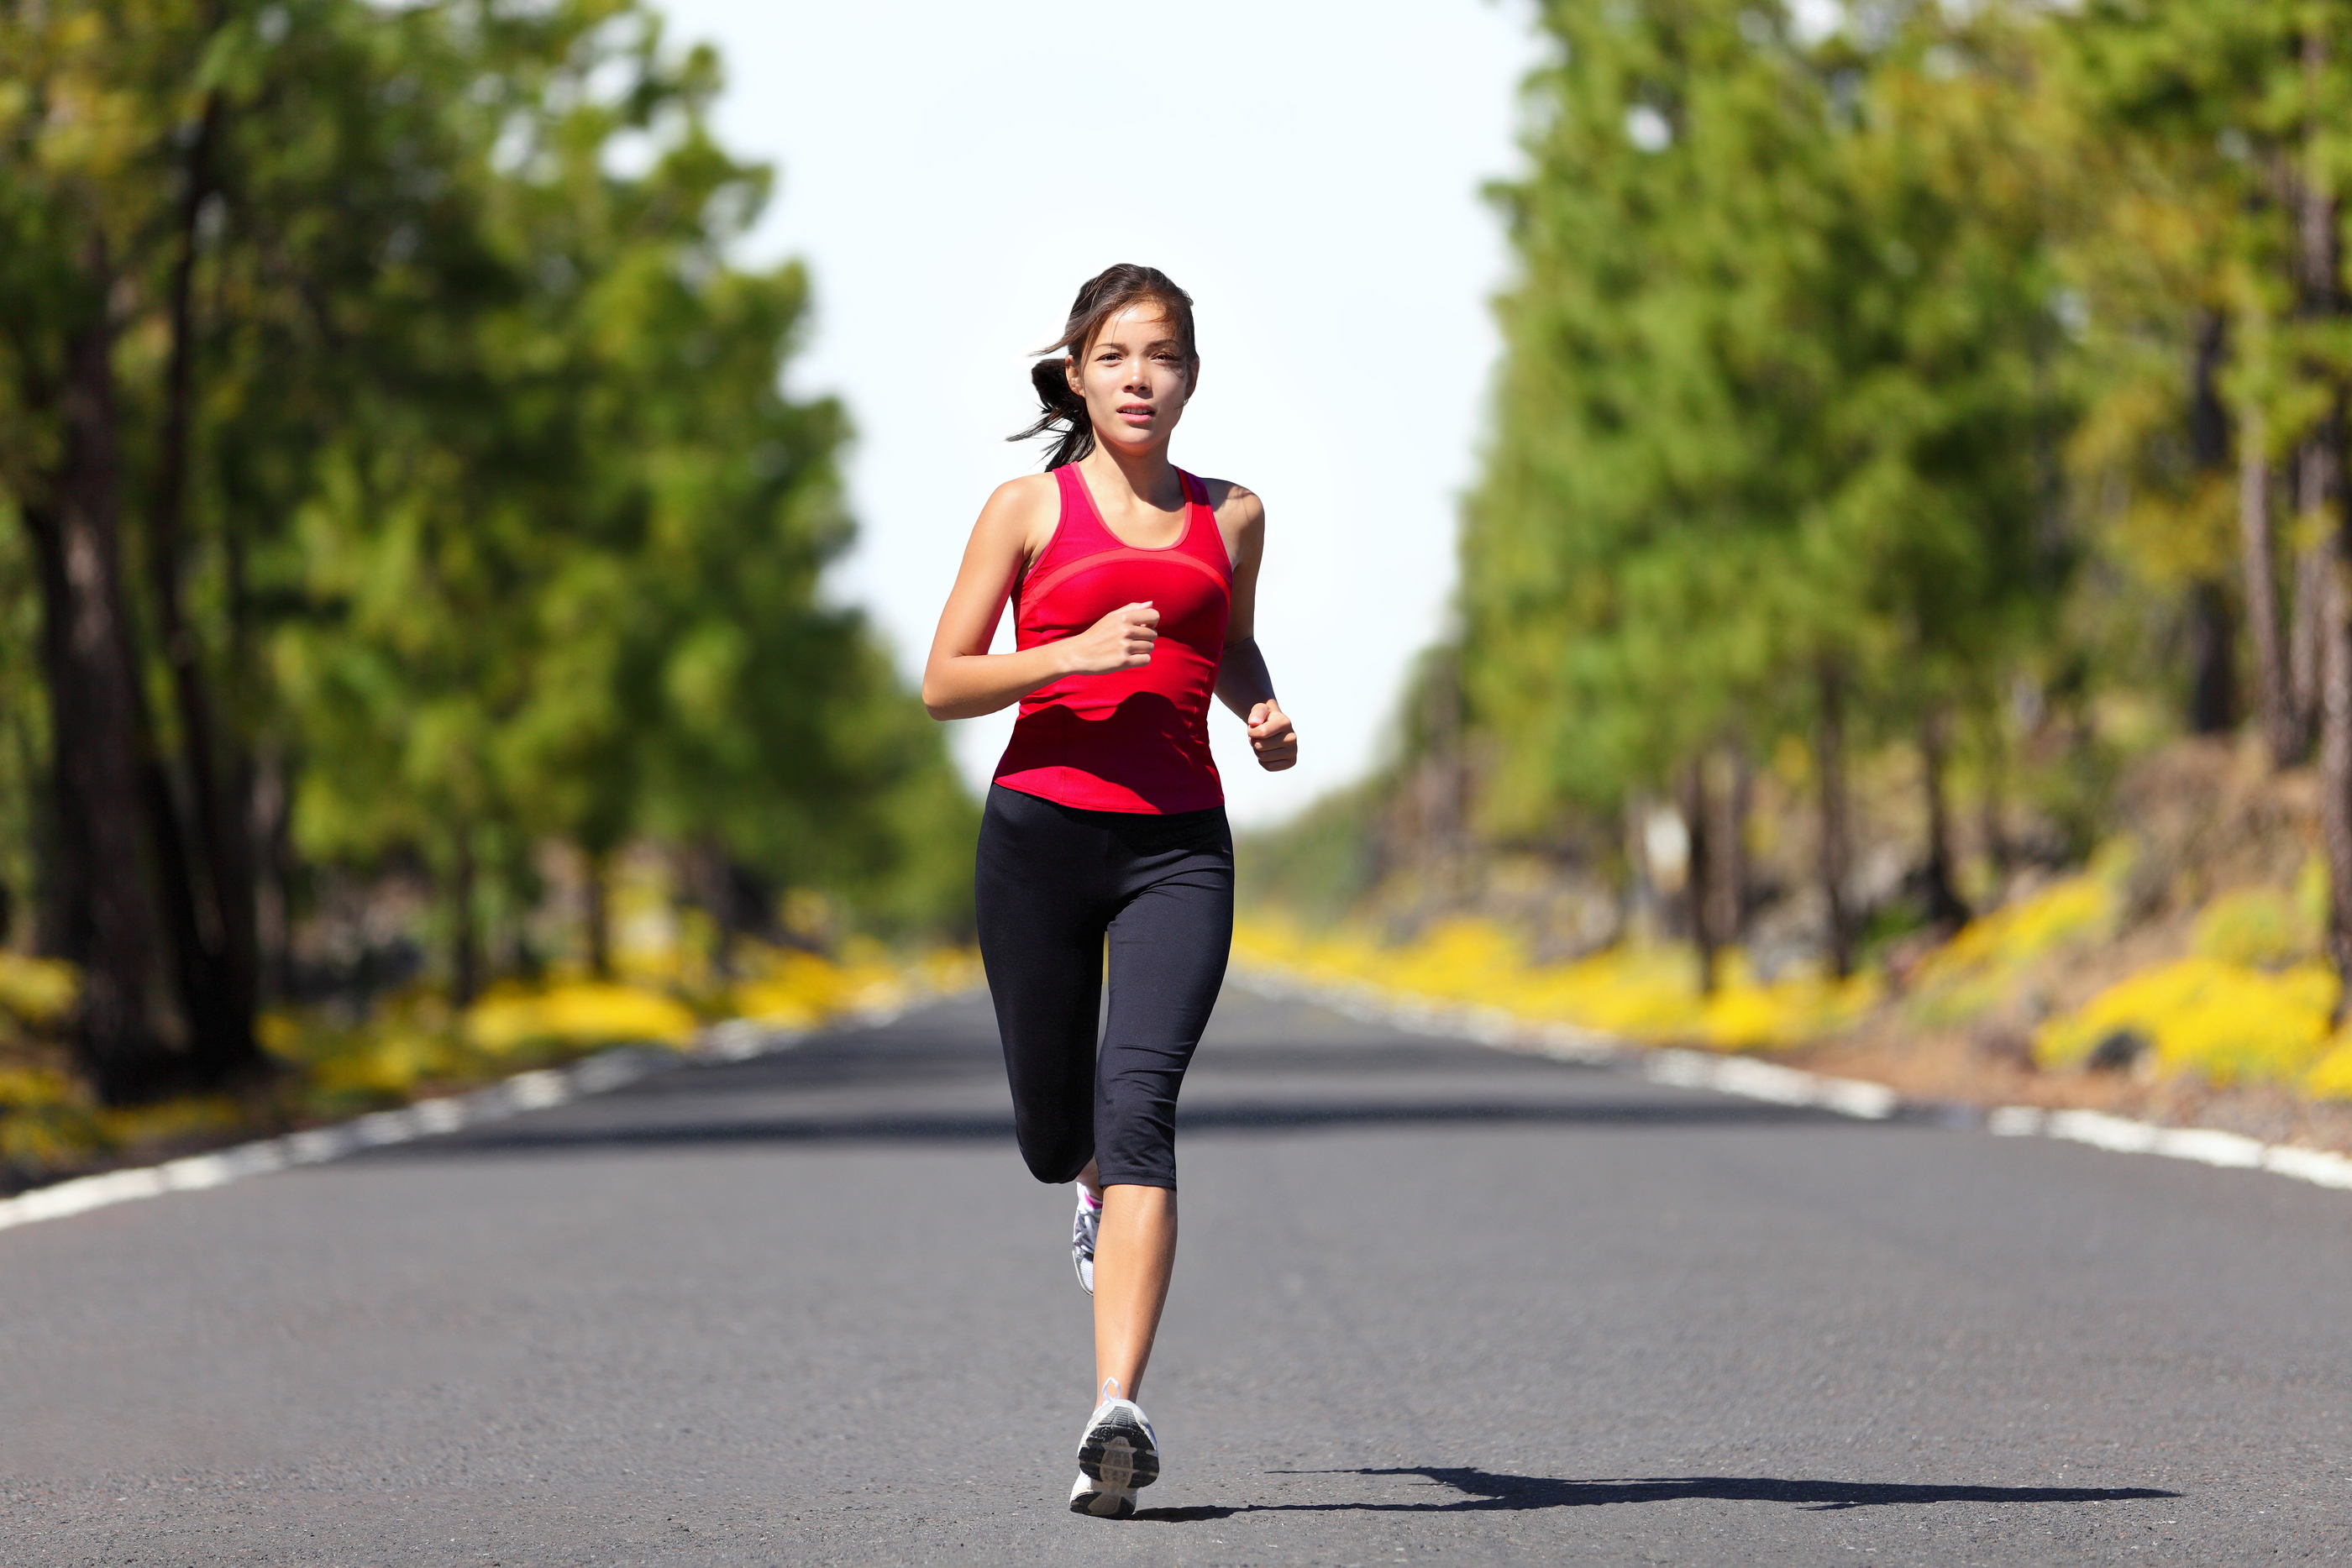 Sport fitness running woman jogging during outdoor workout. Beau